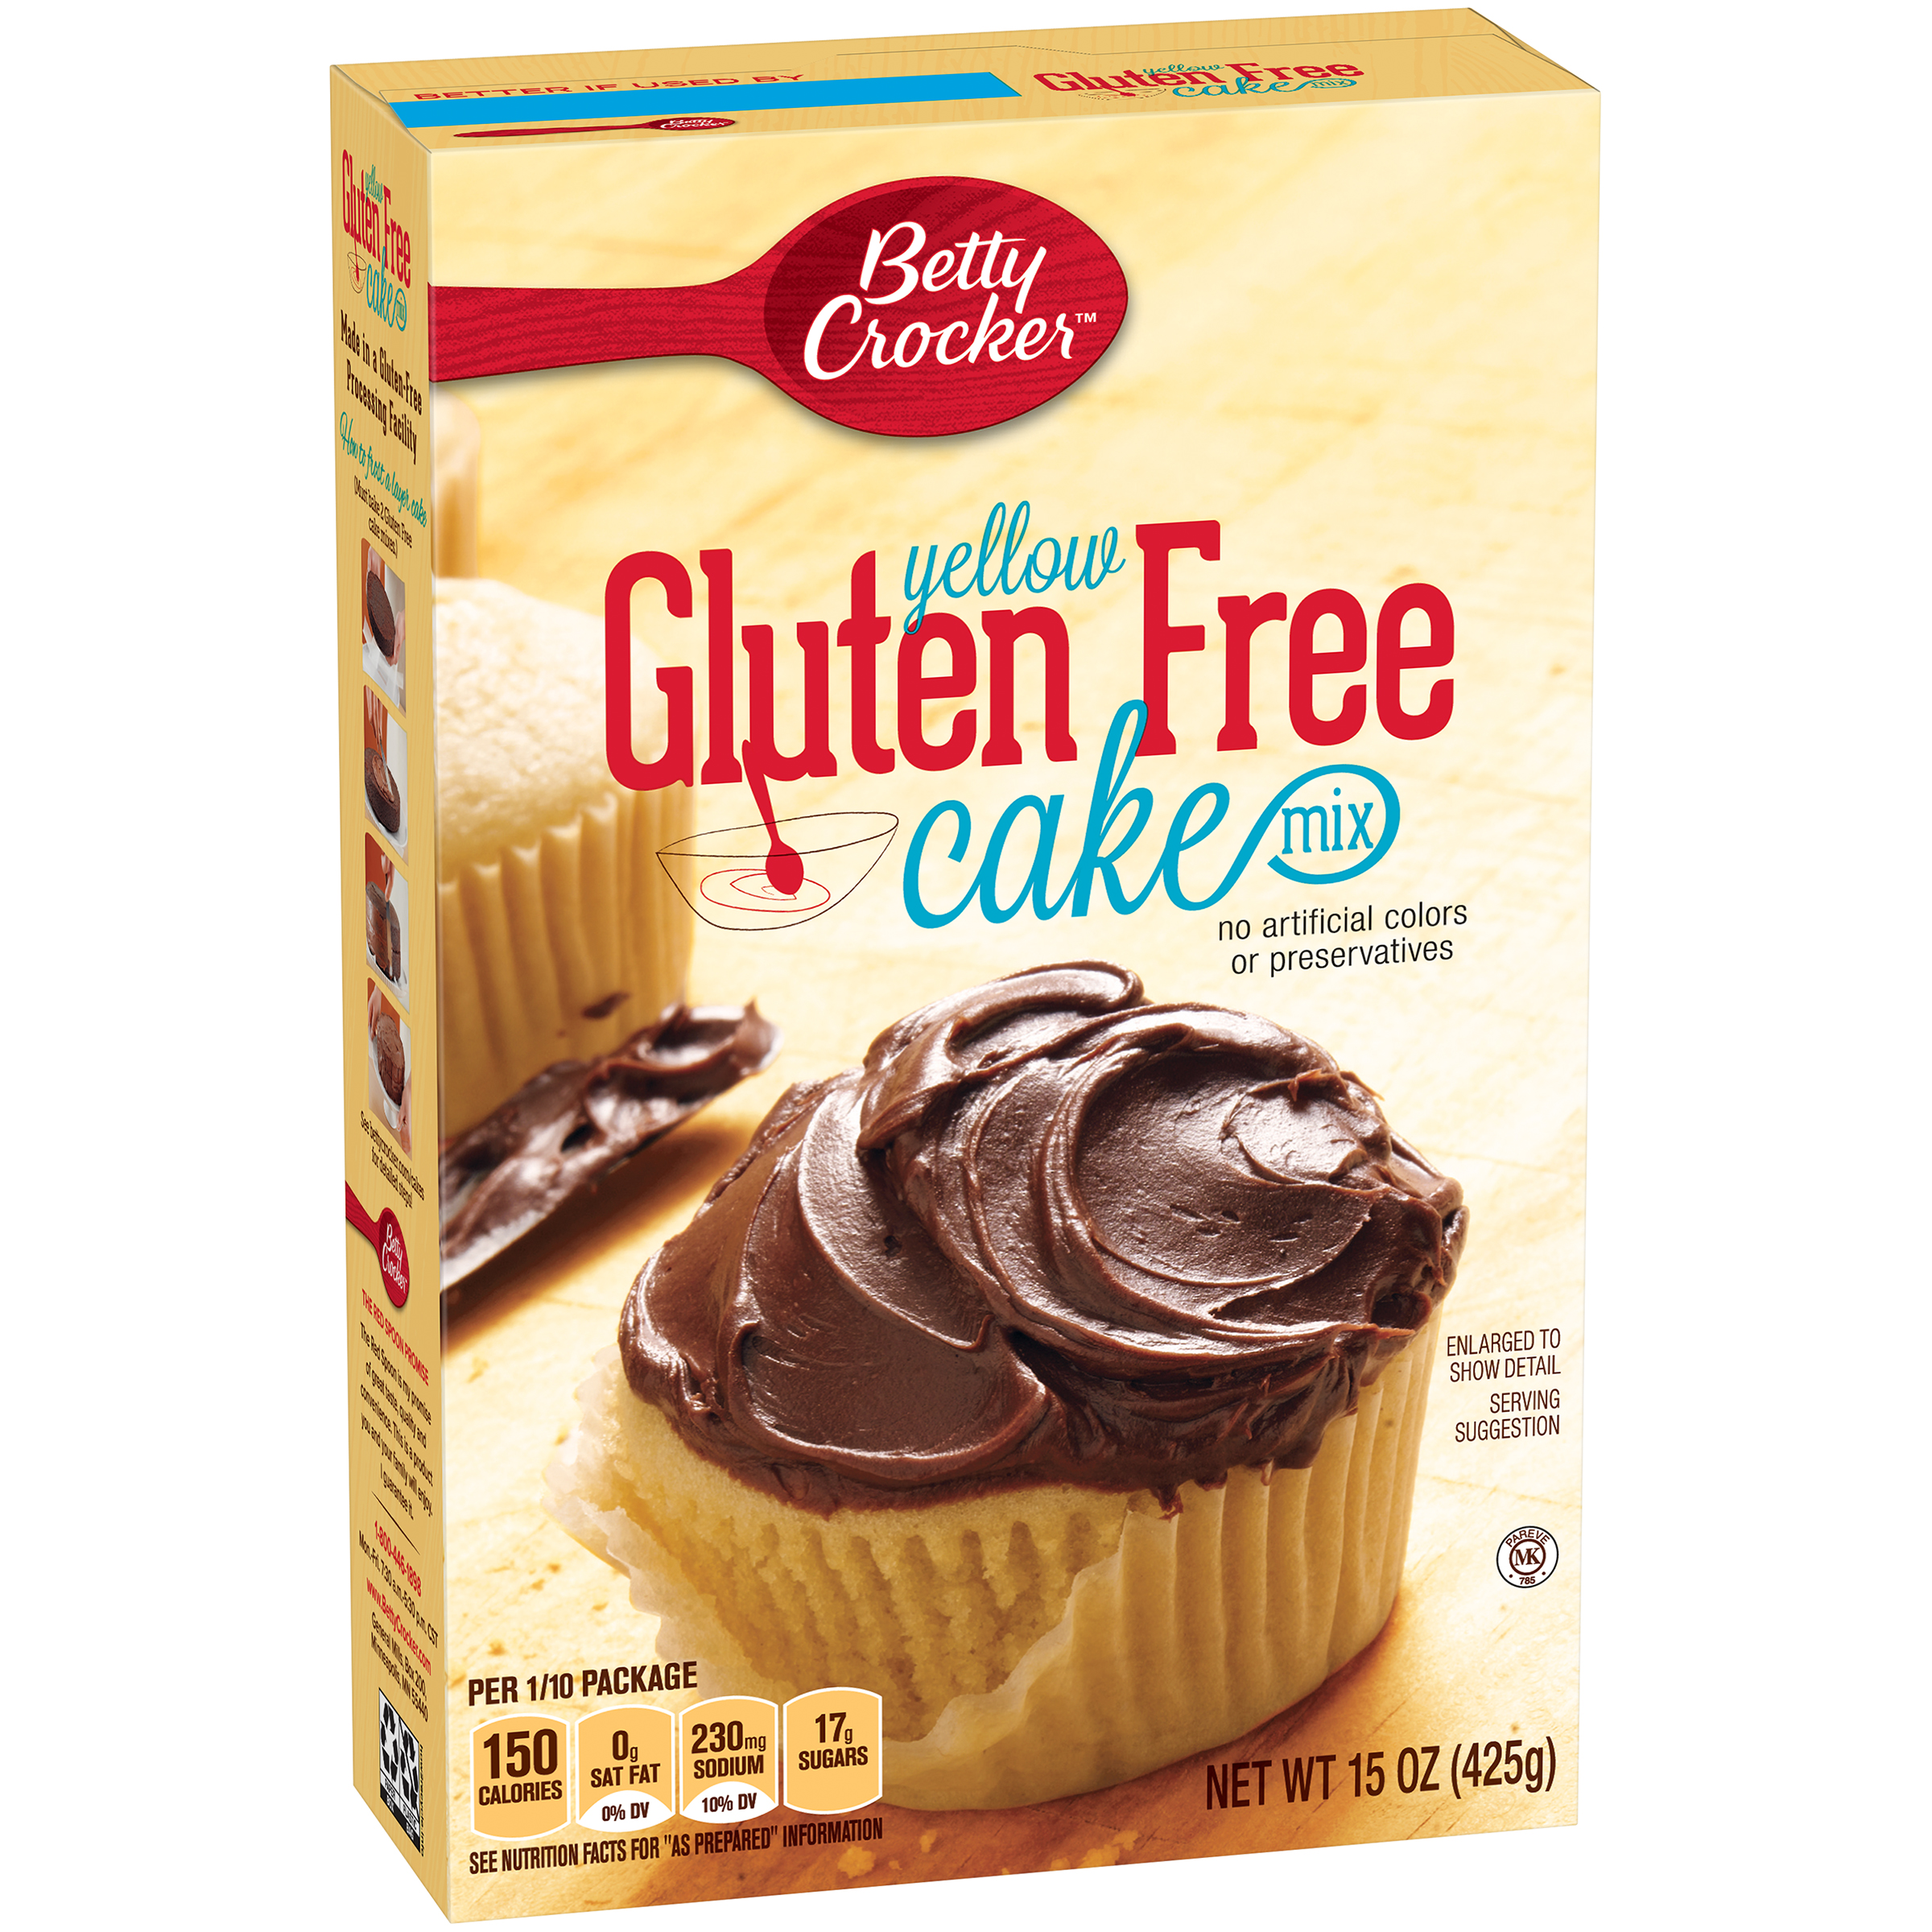 Betty Crocker��� Gluten Free Yellow Cake Mix 15 oz. Box